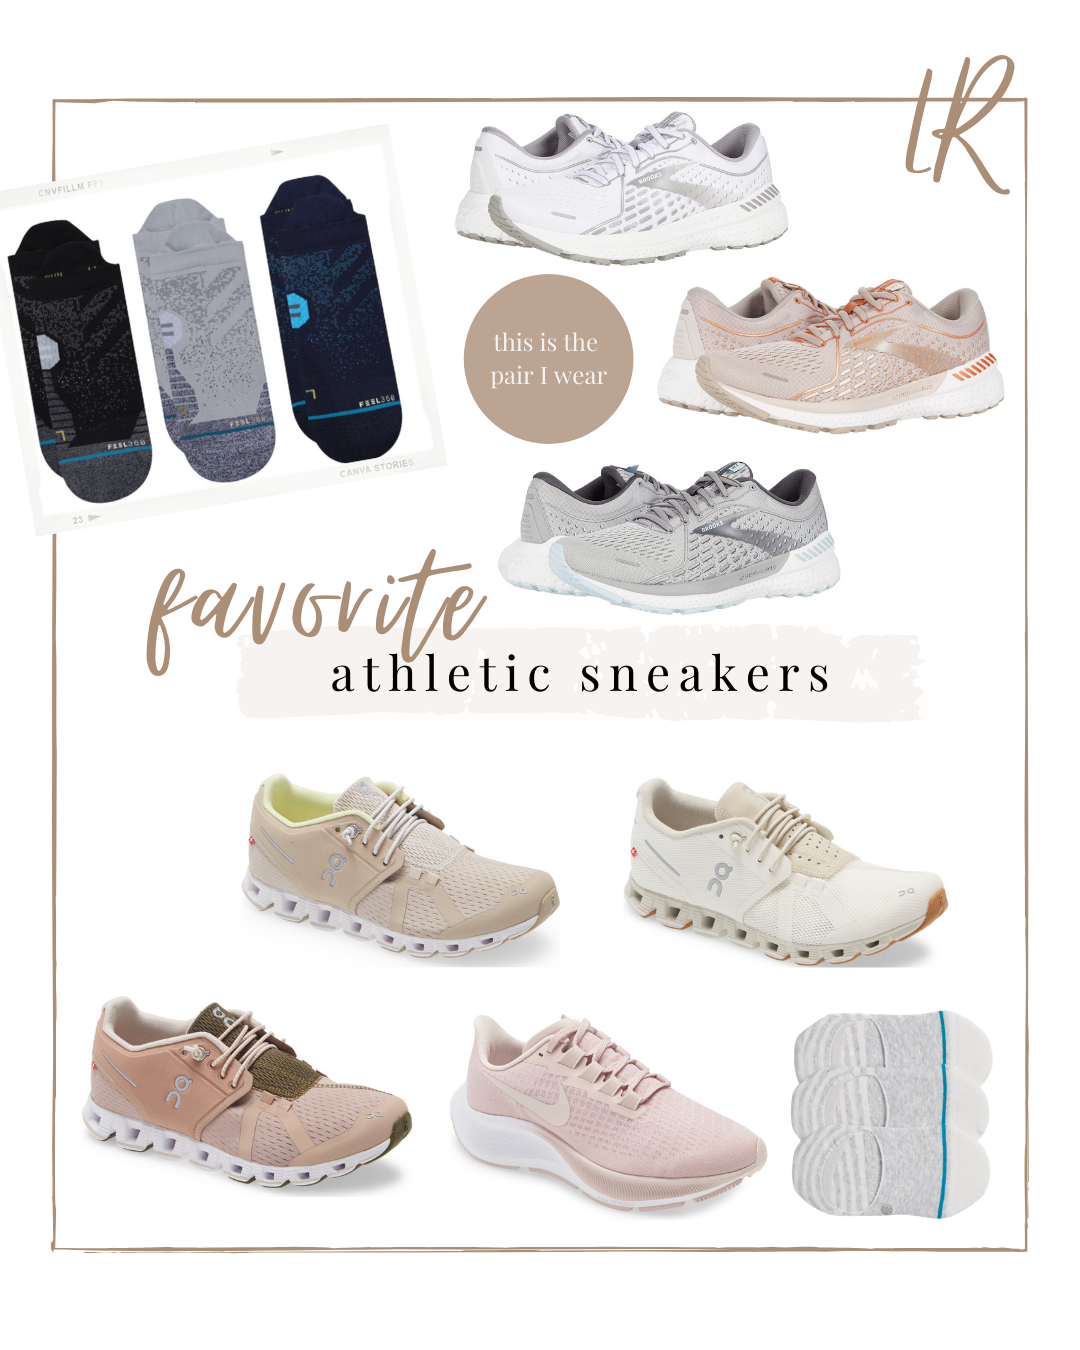 Favorite Athletic Sneakers - at home workout sneakers, running sneakers   lifestyle   Louella Reese